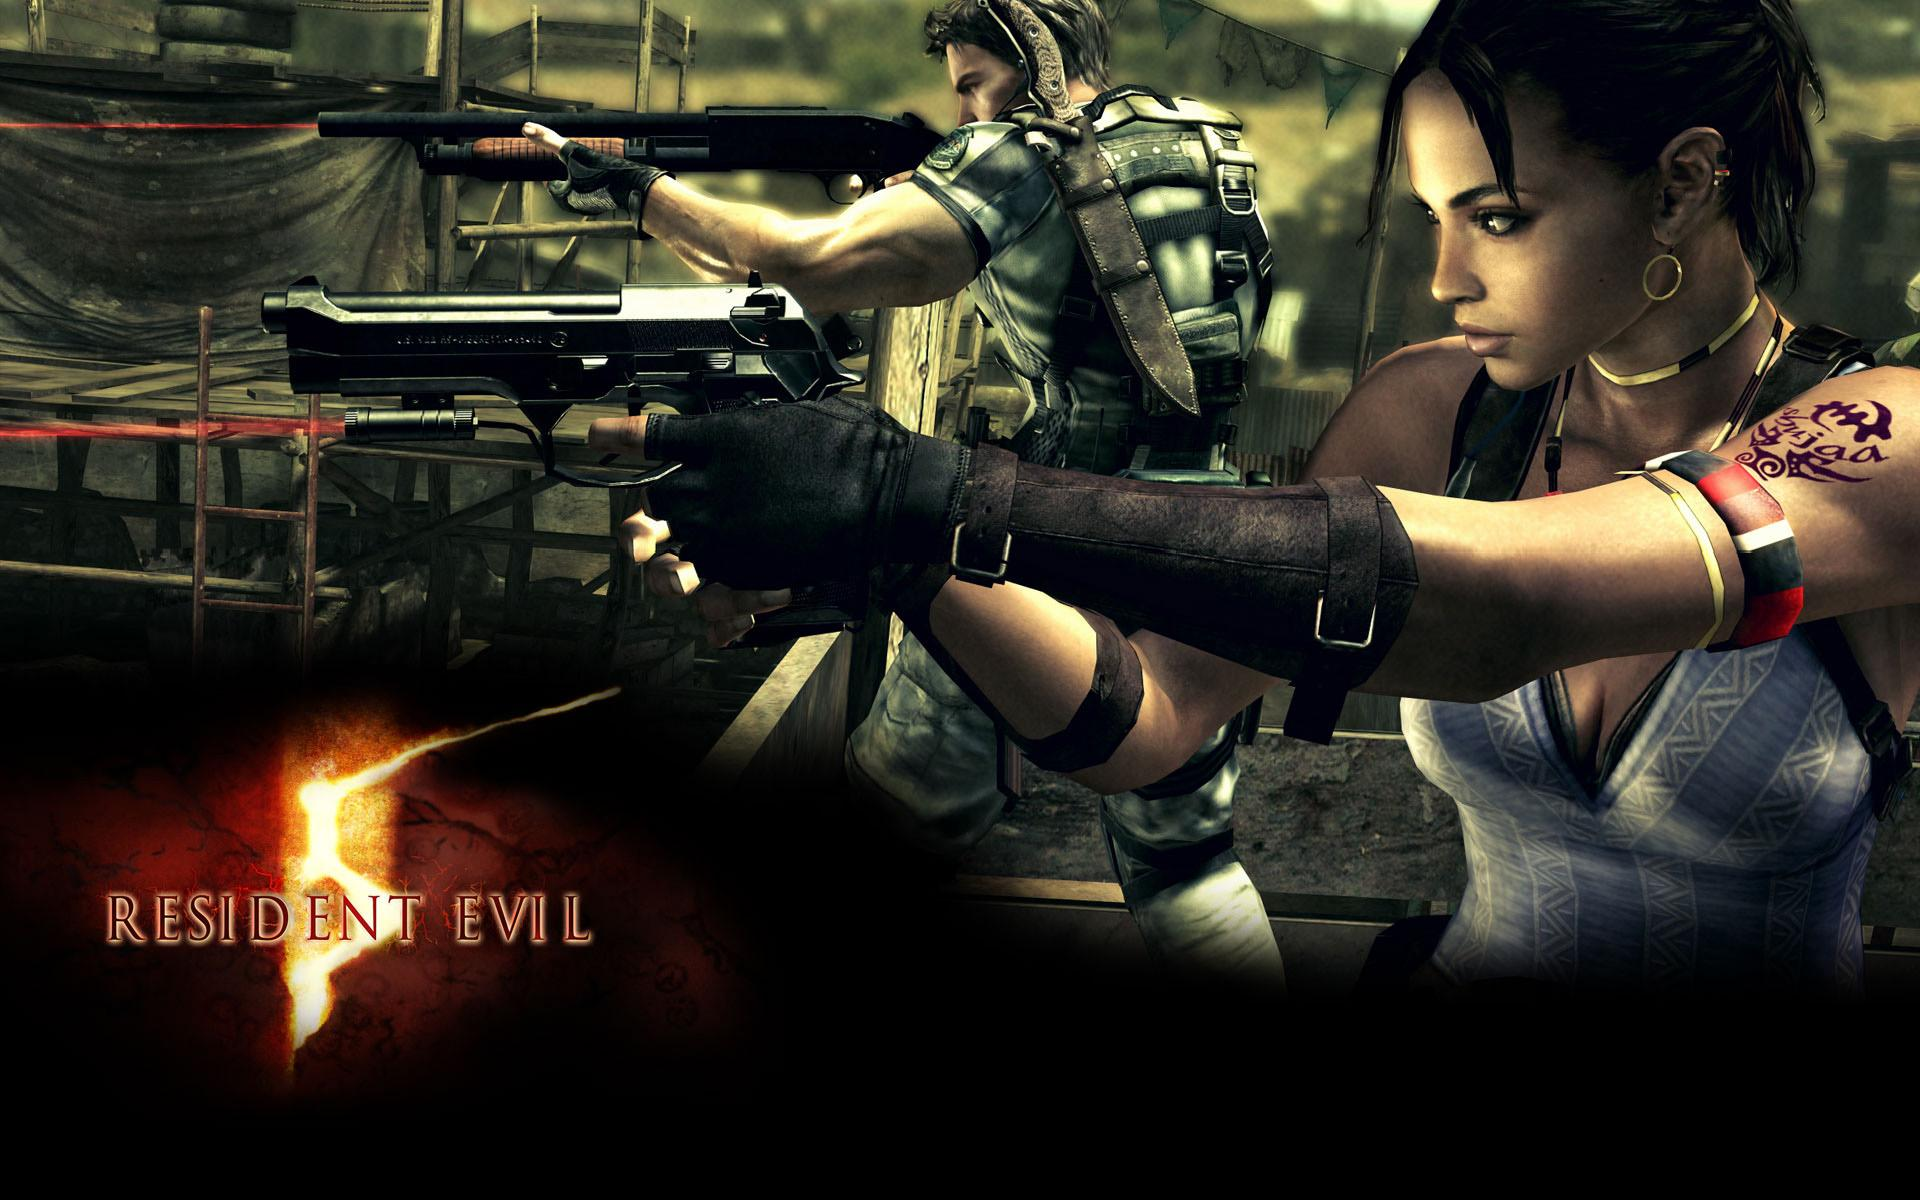 Resident Evil 5 3 Wallpapers Hd Wallpapers 99712